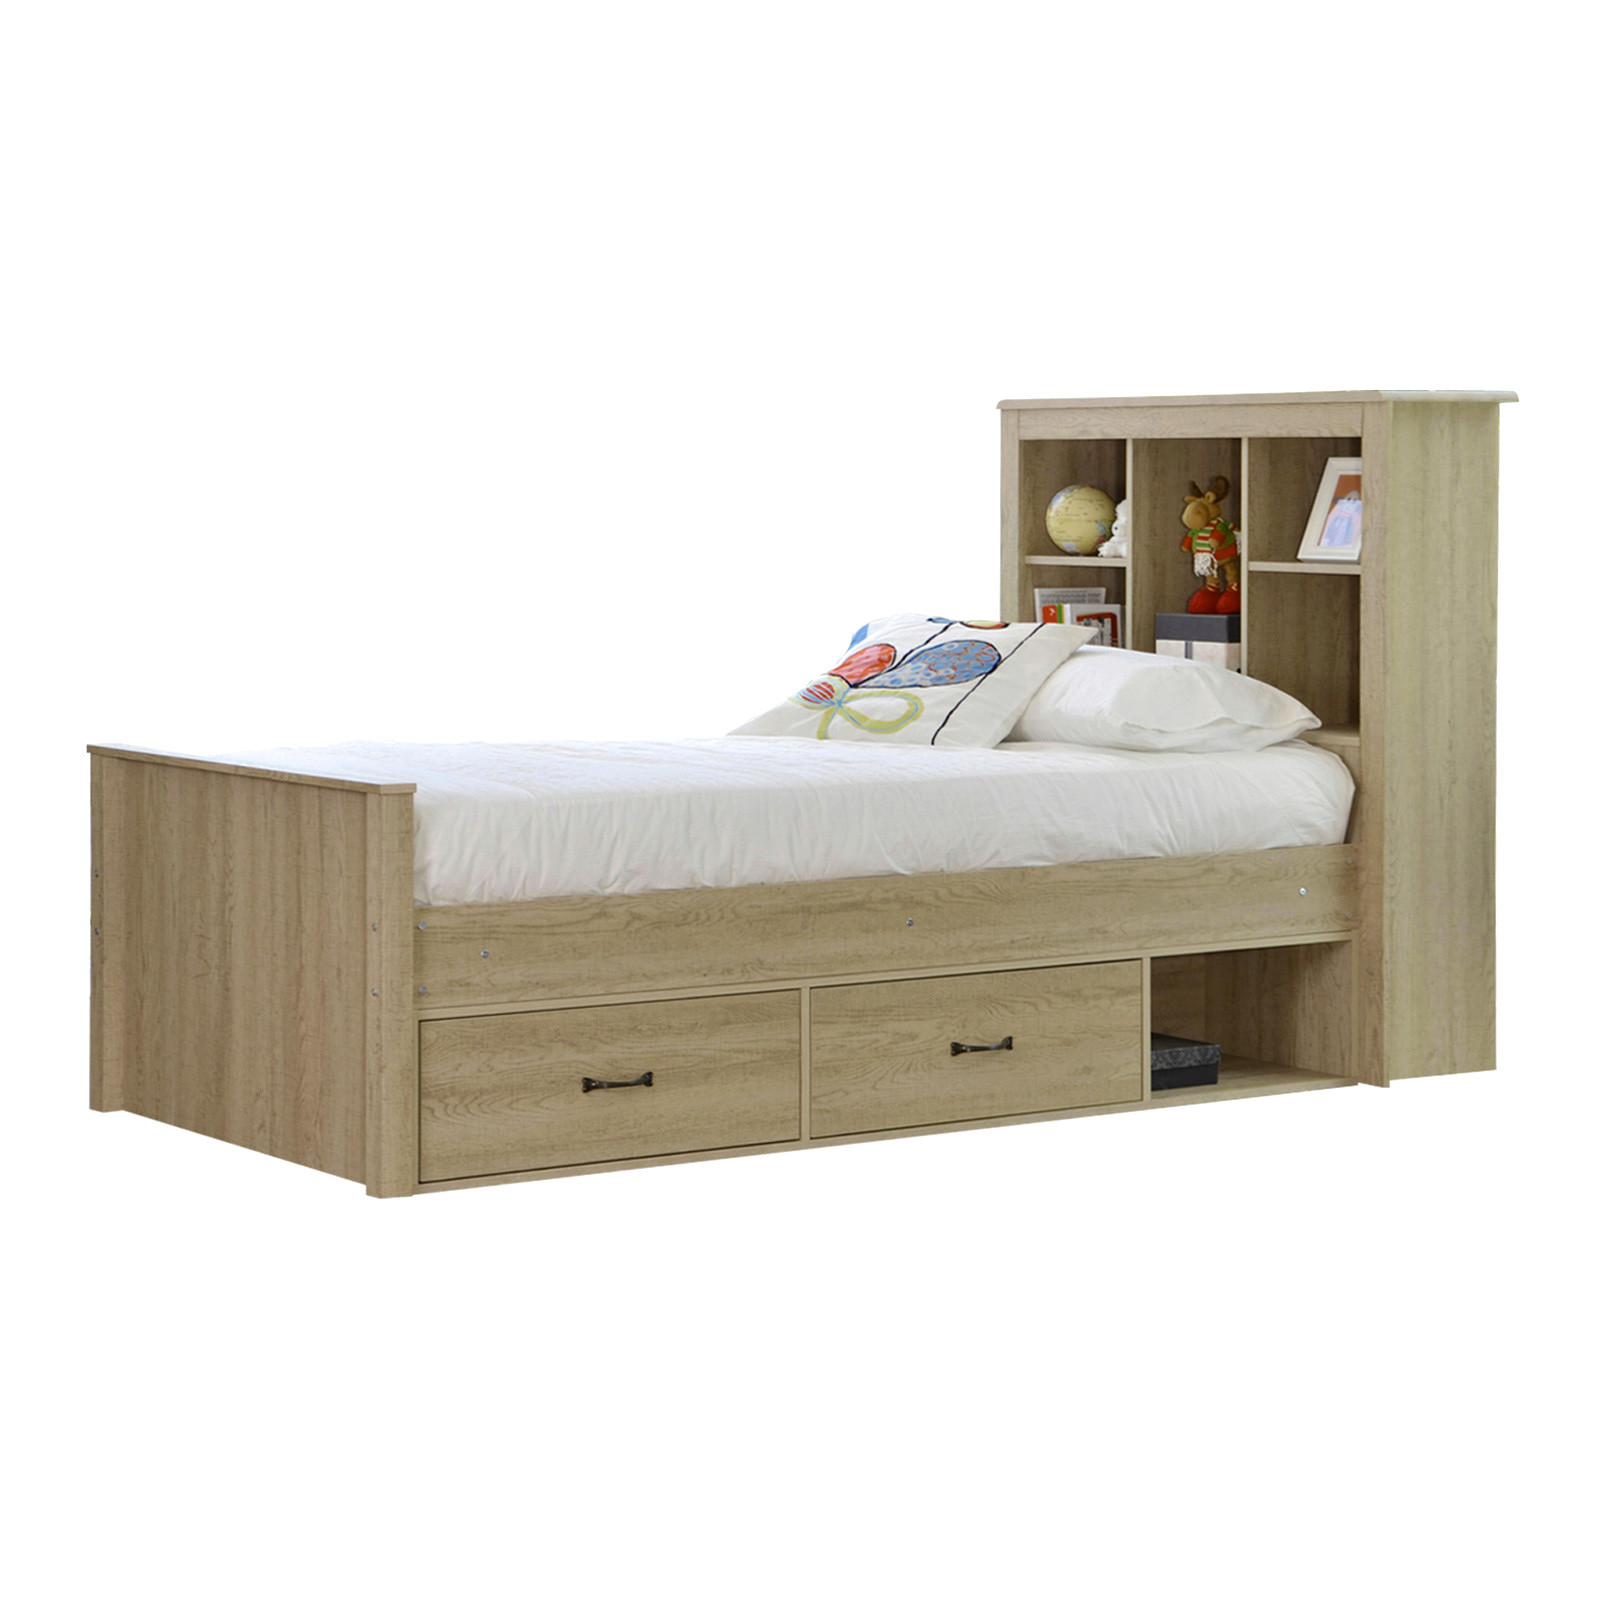 alpen small beds kitchen amazon dp bowen home single uk co bed julian